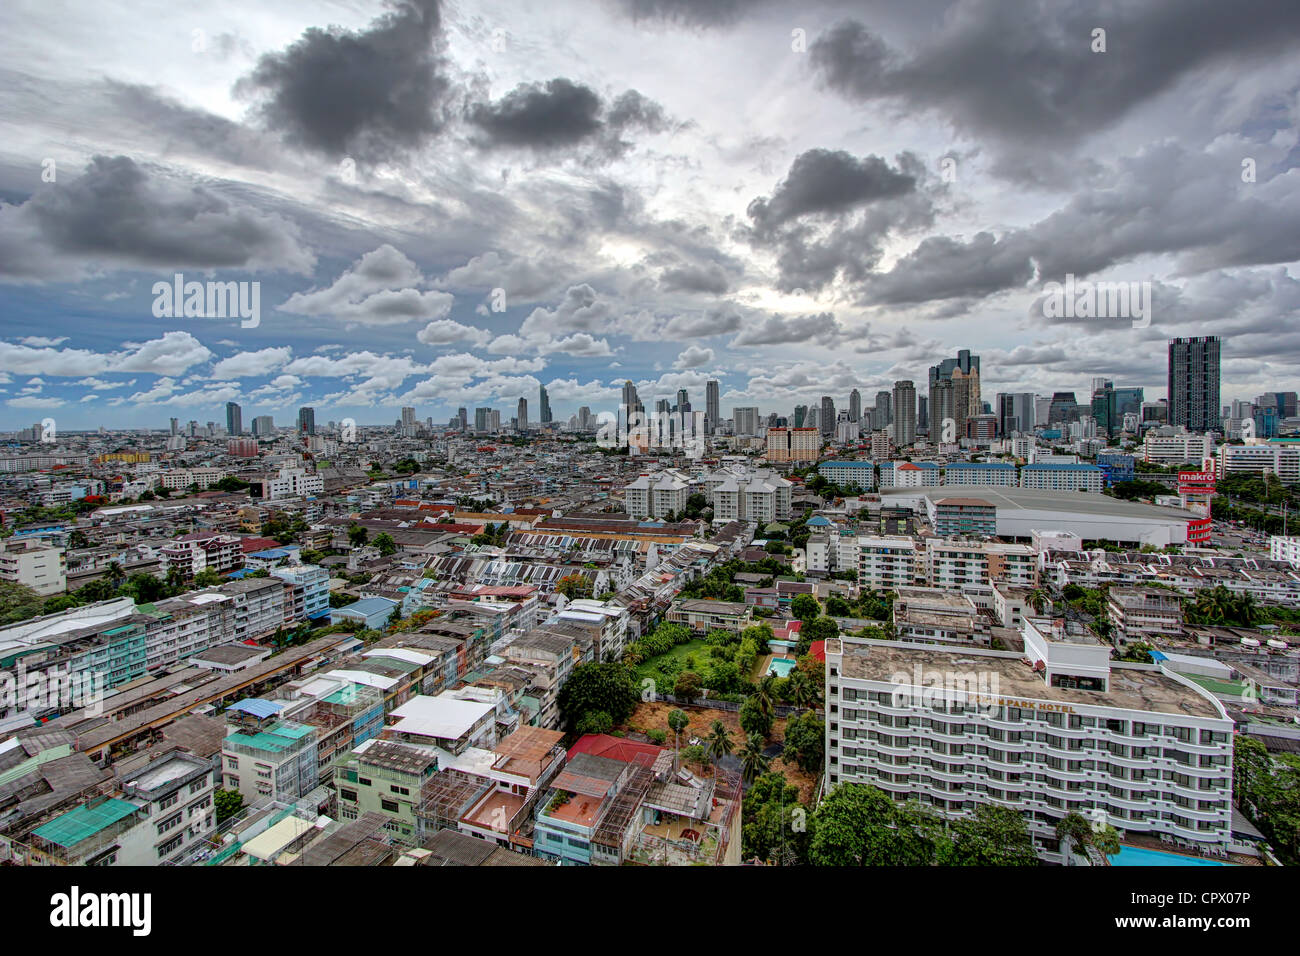 Cloudy Day, Urban Sprawl | Bangkok - Stock Image